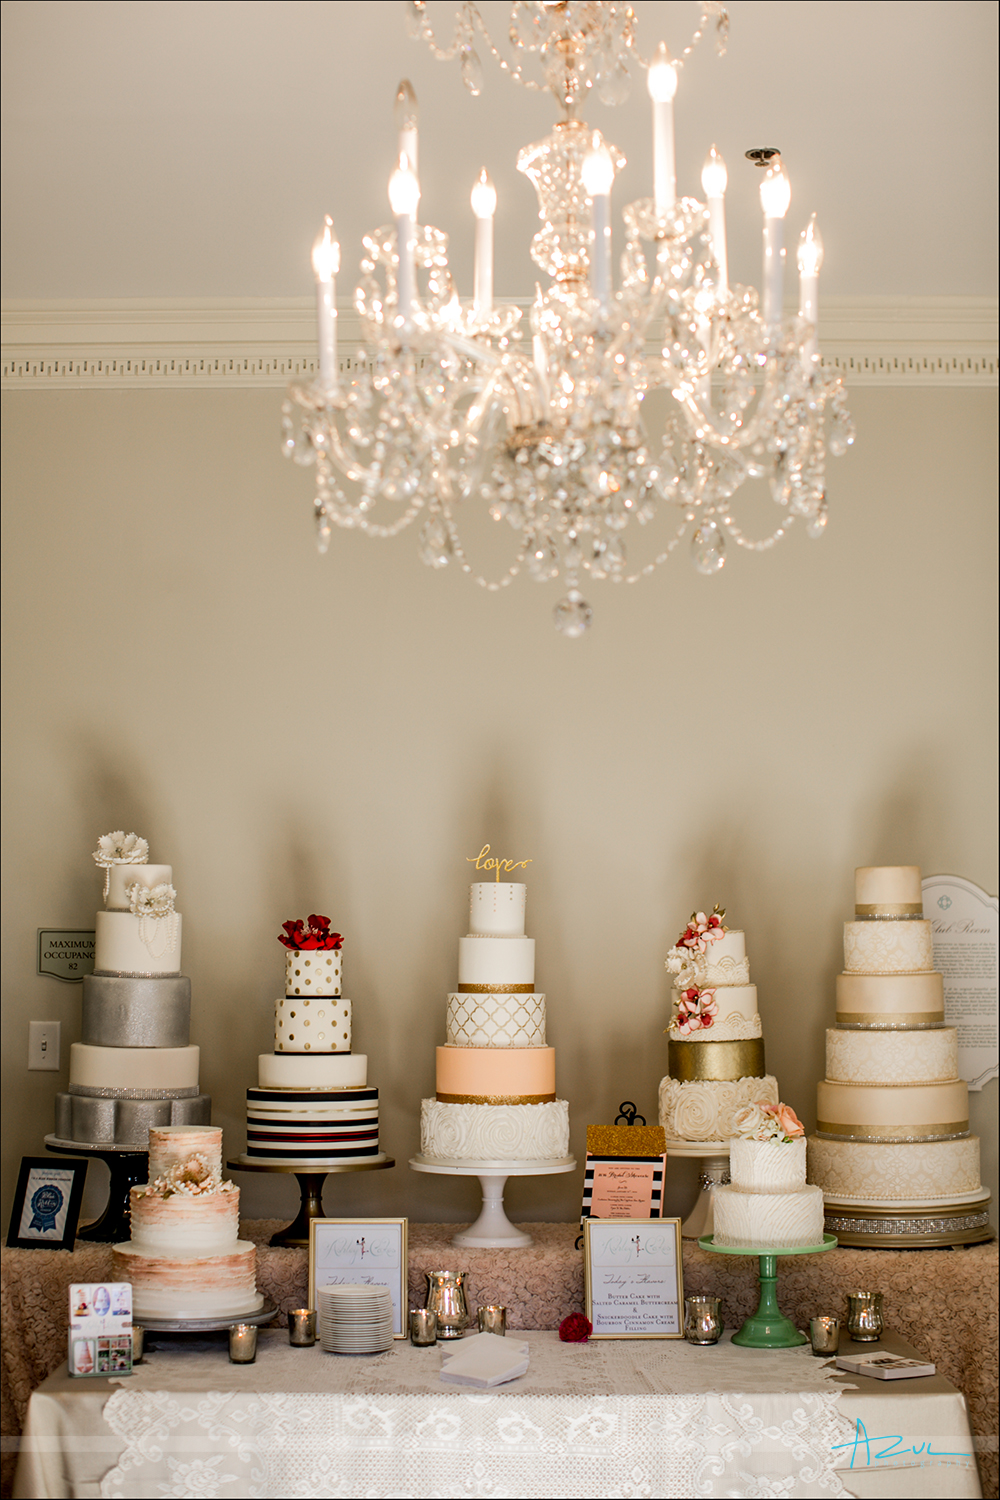 Best wedding day cakes Ashley Cakes Raleigh, NC